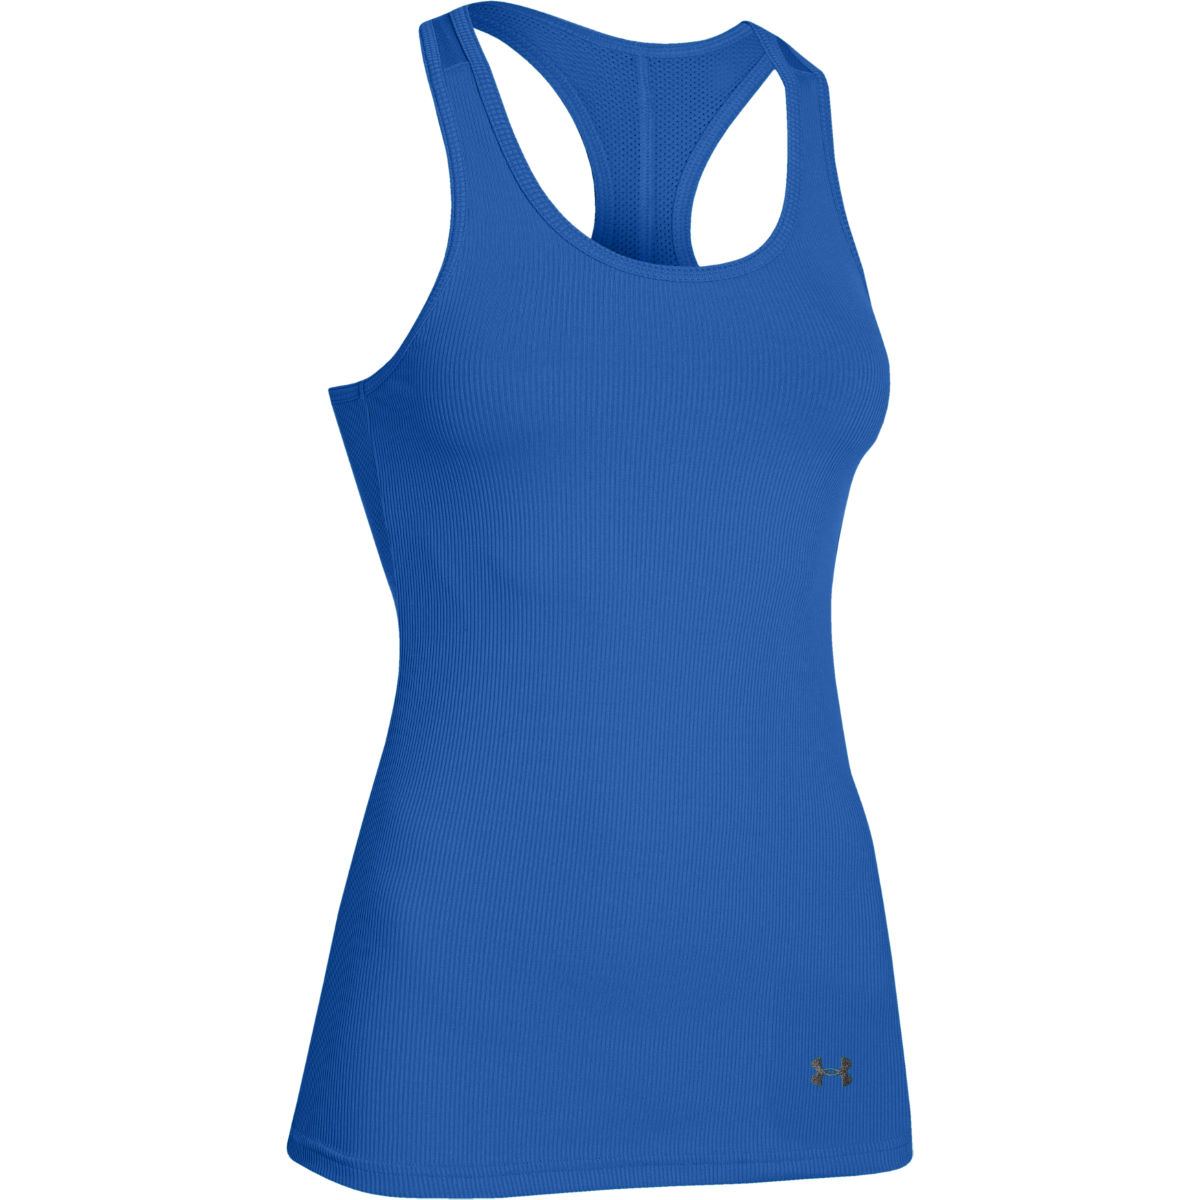 Under Armour Women's UA Victory Tank - AW14